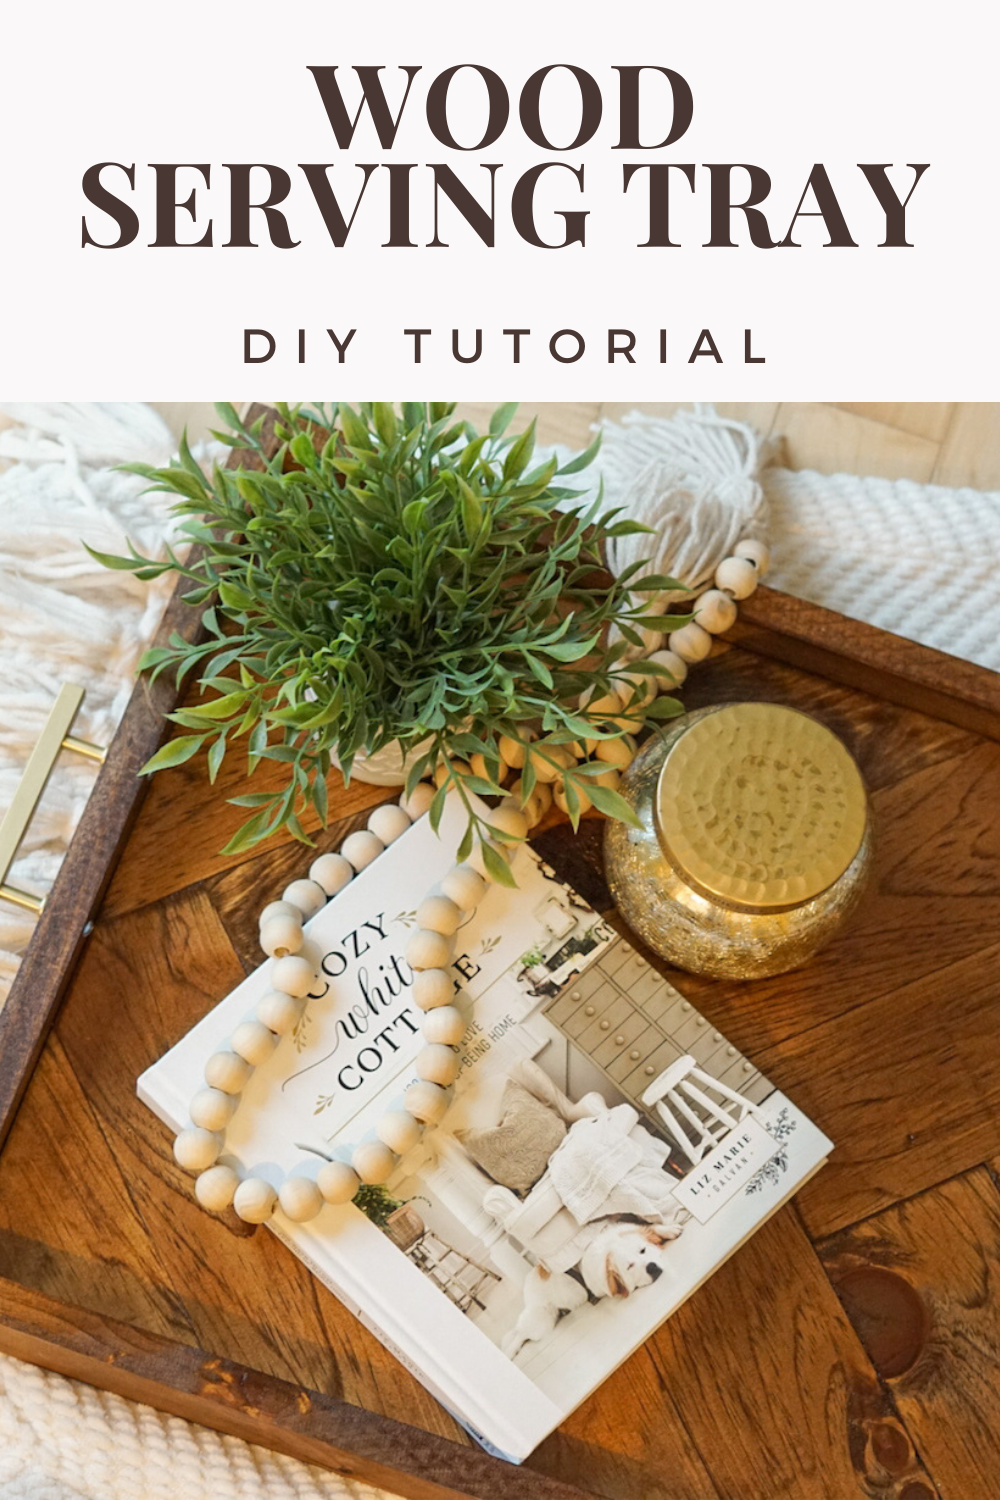 These DIY wood serving trays make such cute home decor, but are also functional.  Making this serving tray is easier than you might think!